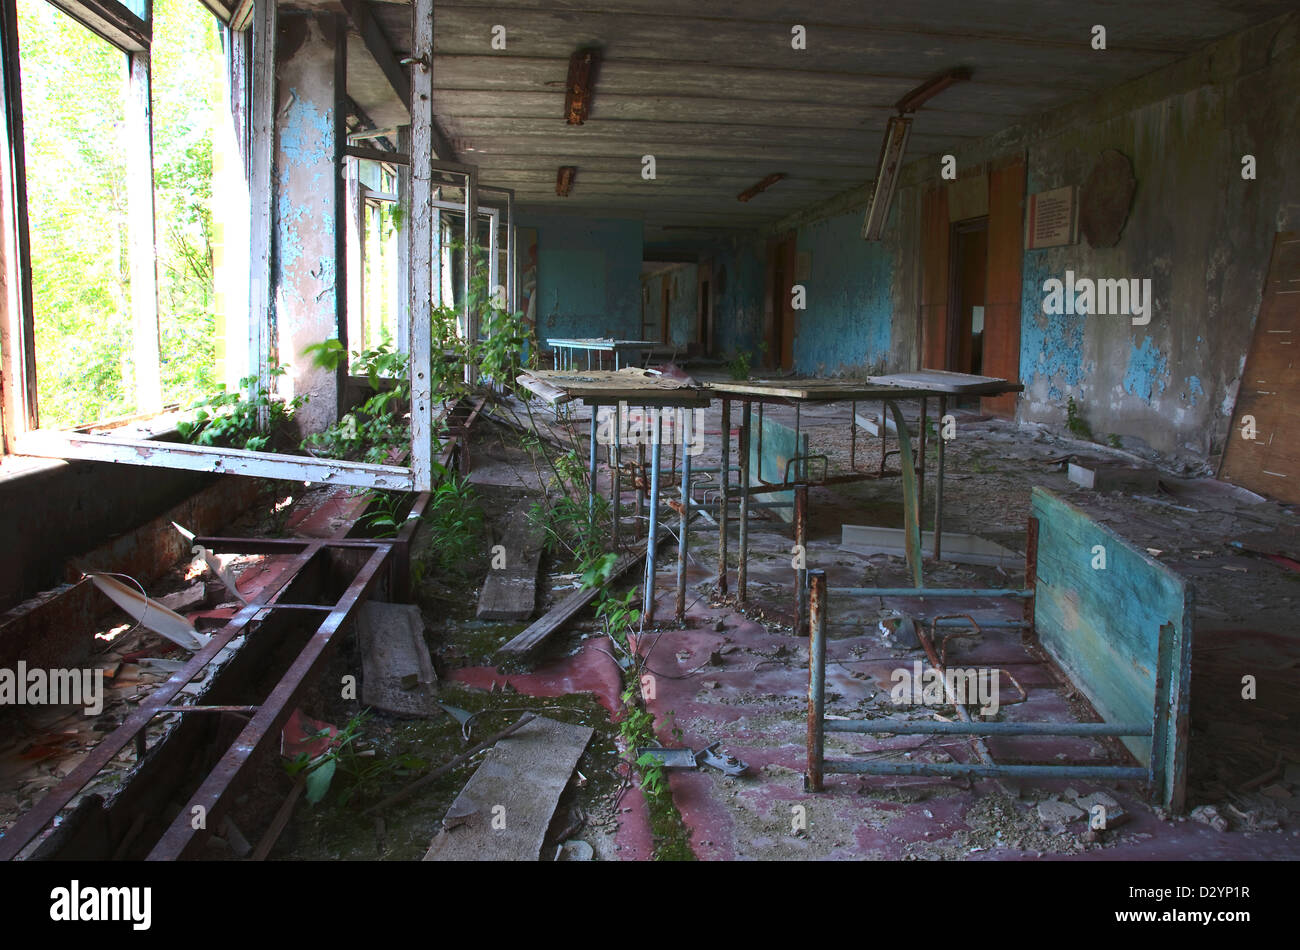 Chernobyl disaster results. Abandoned school. - Stock Image